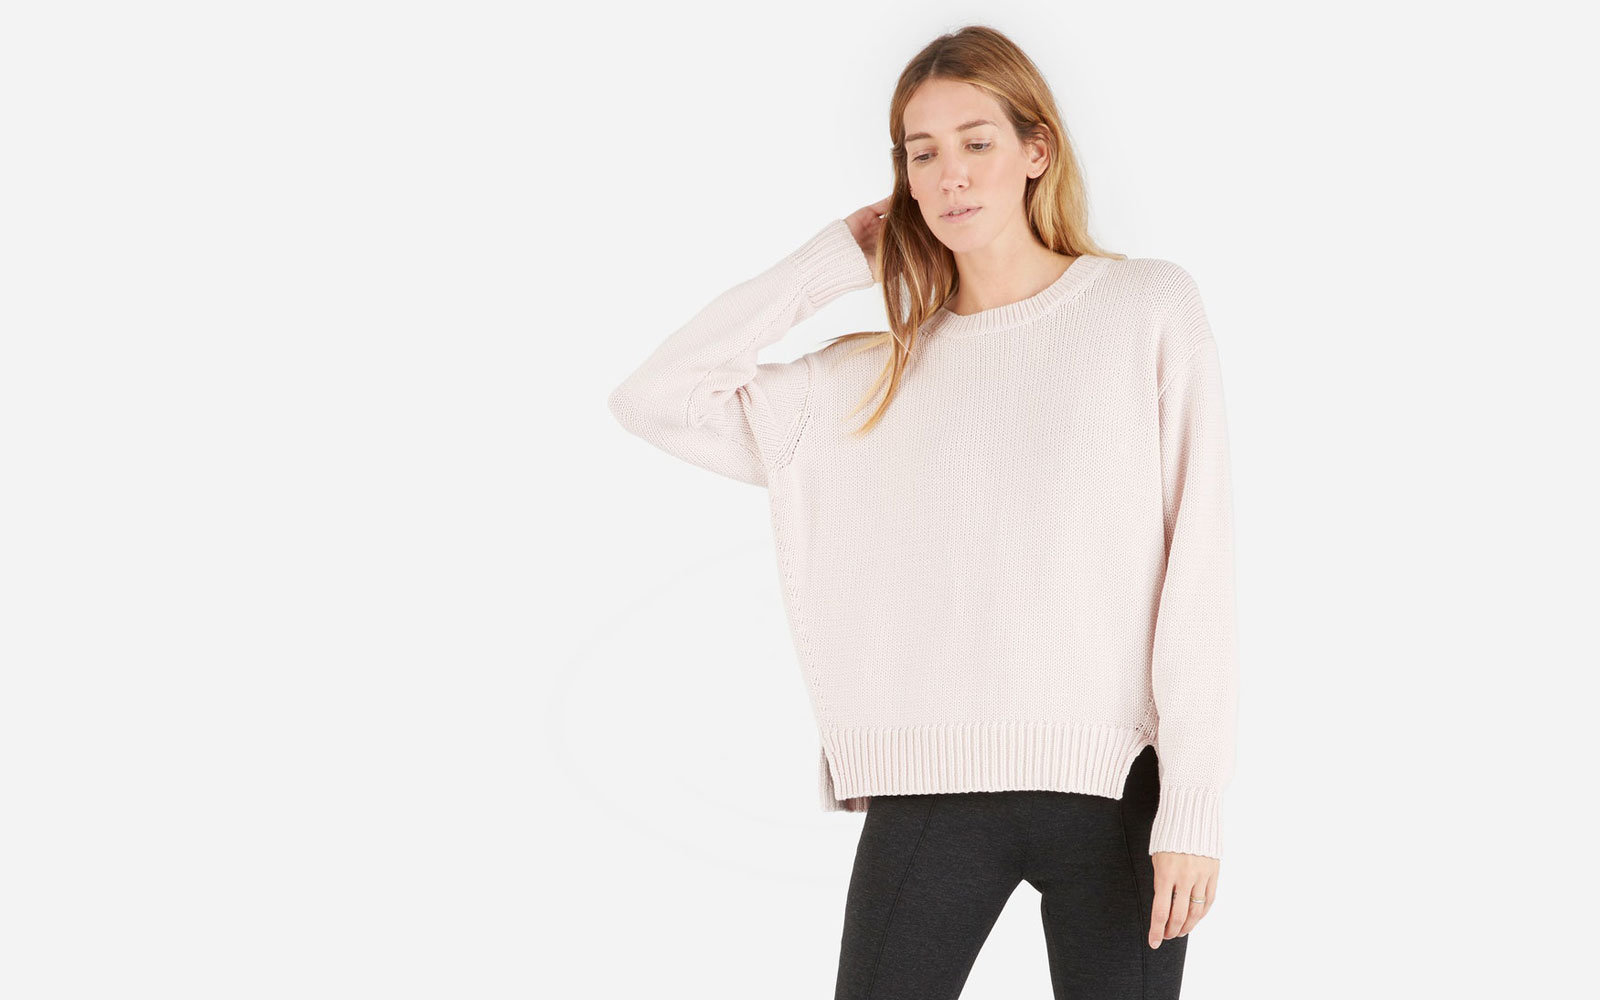 Everlane's The Chunky Knit Cotton Crew